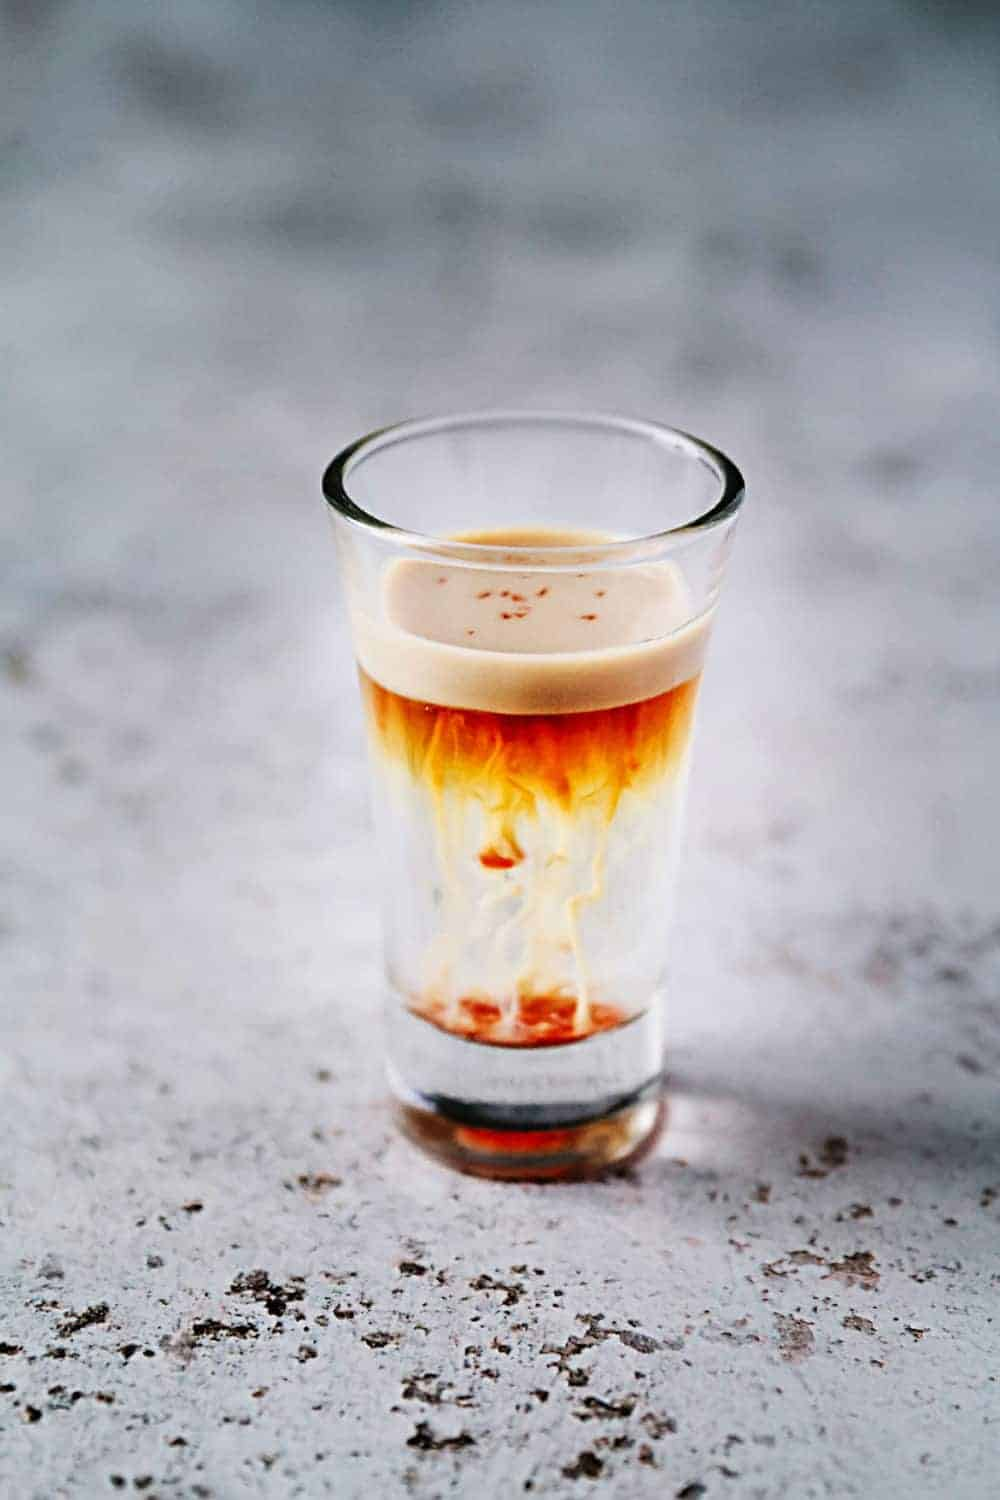 A small shot glass with jellyfish beverage sitting on a gray counter